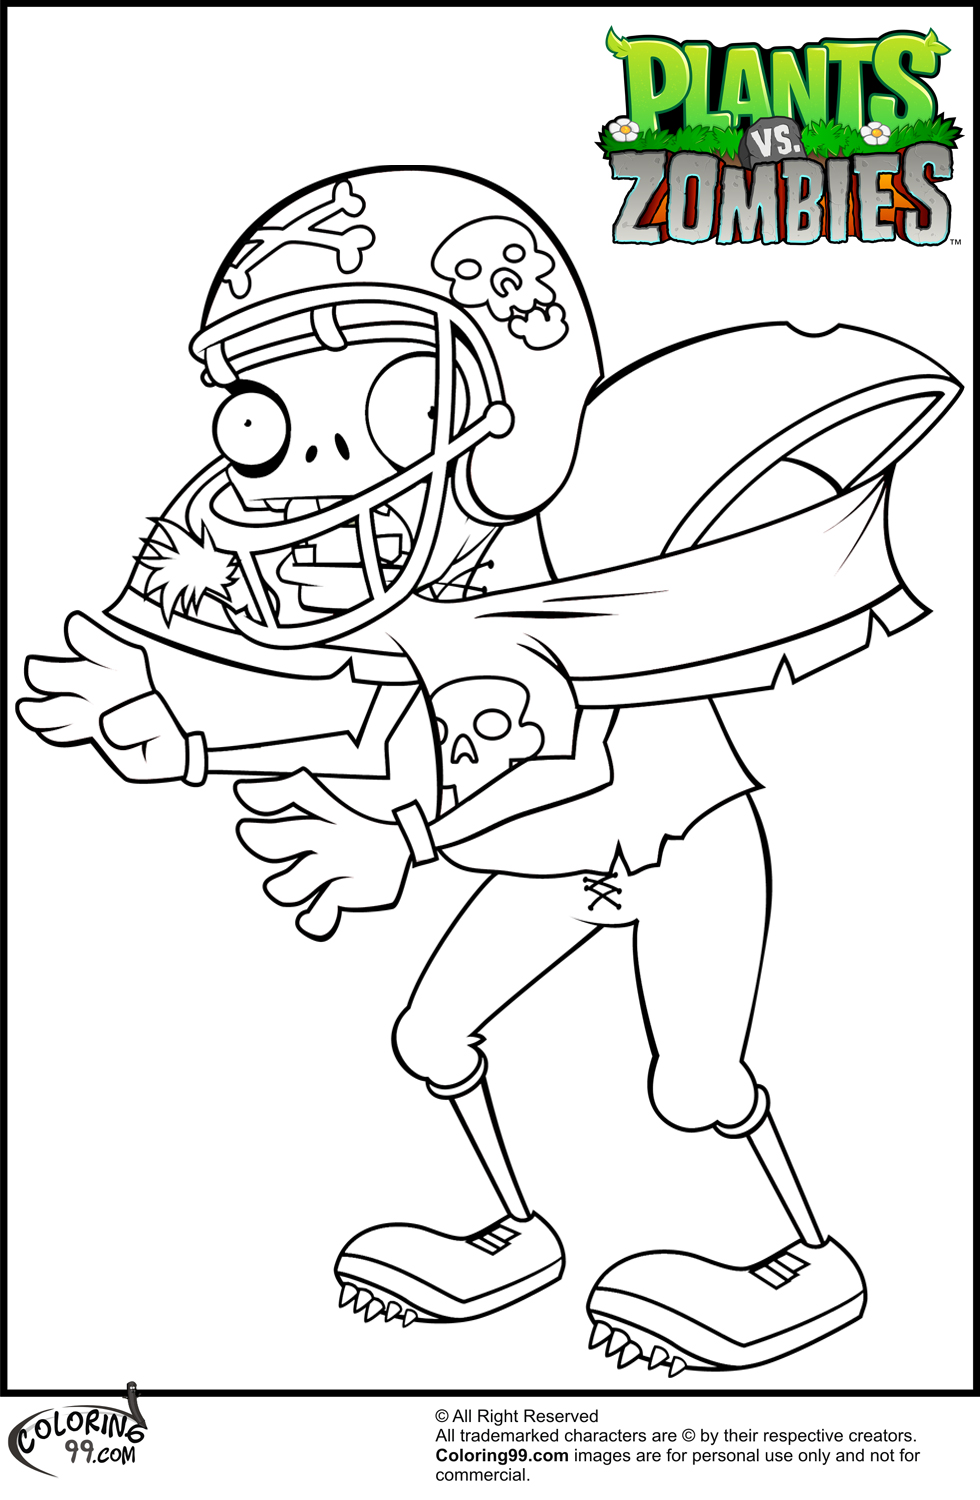 980x1500 Plants Vs Zombies Football Zombie Coloring Pages About Plants Vs